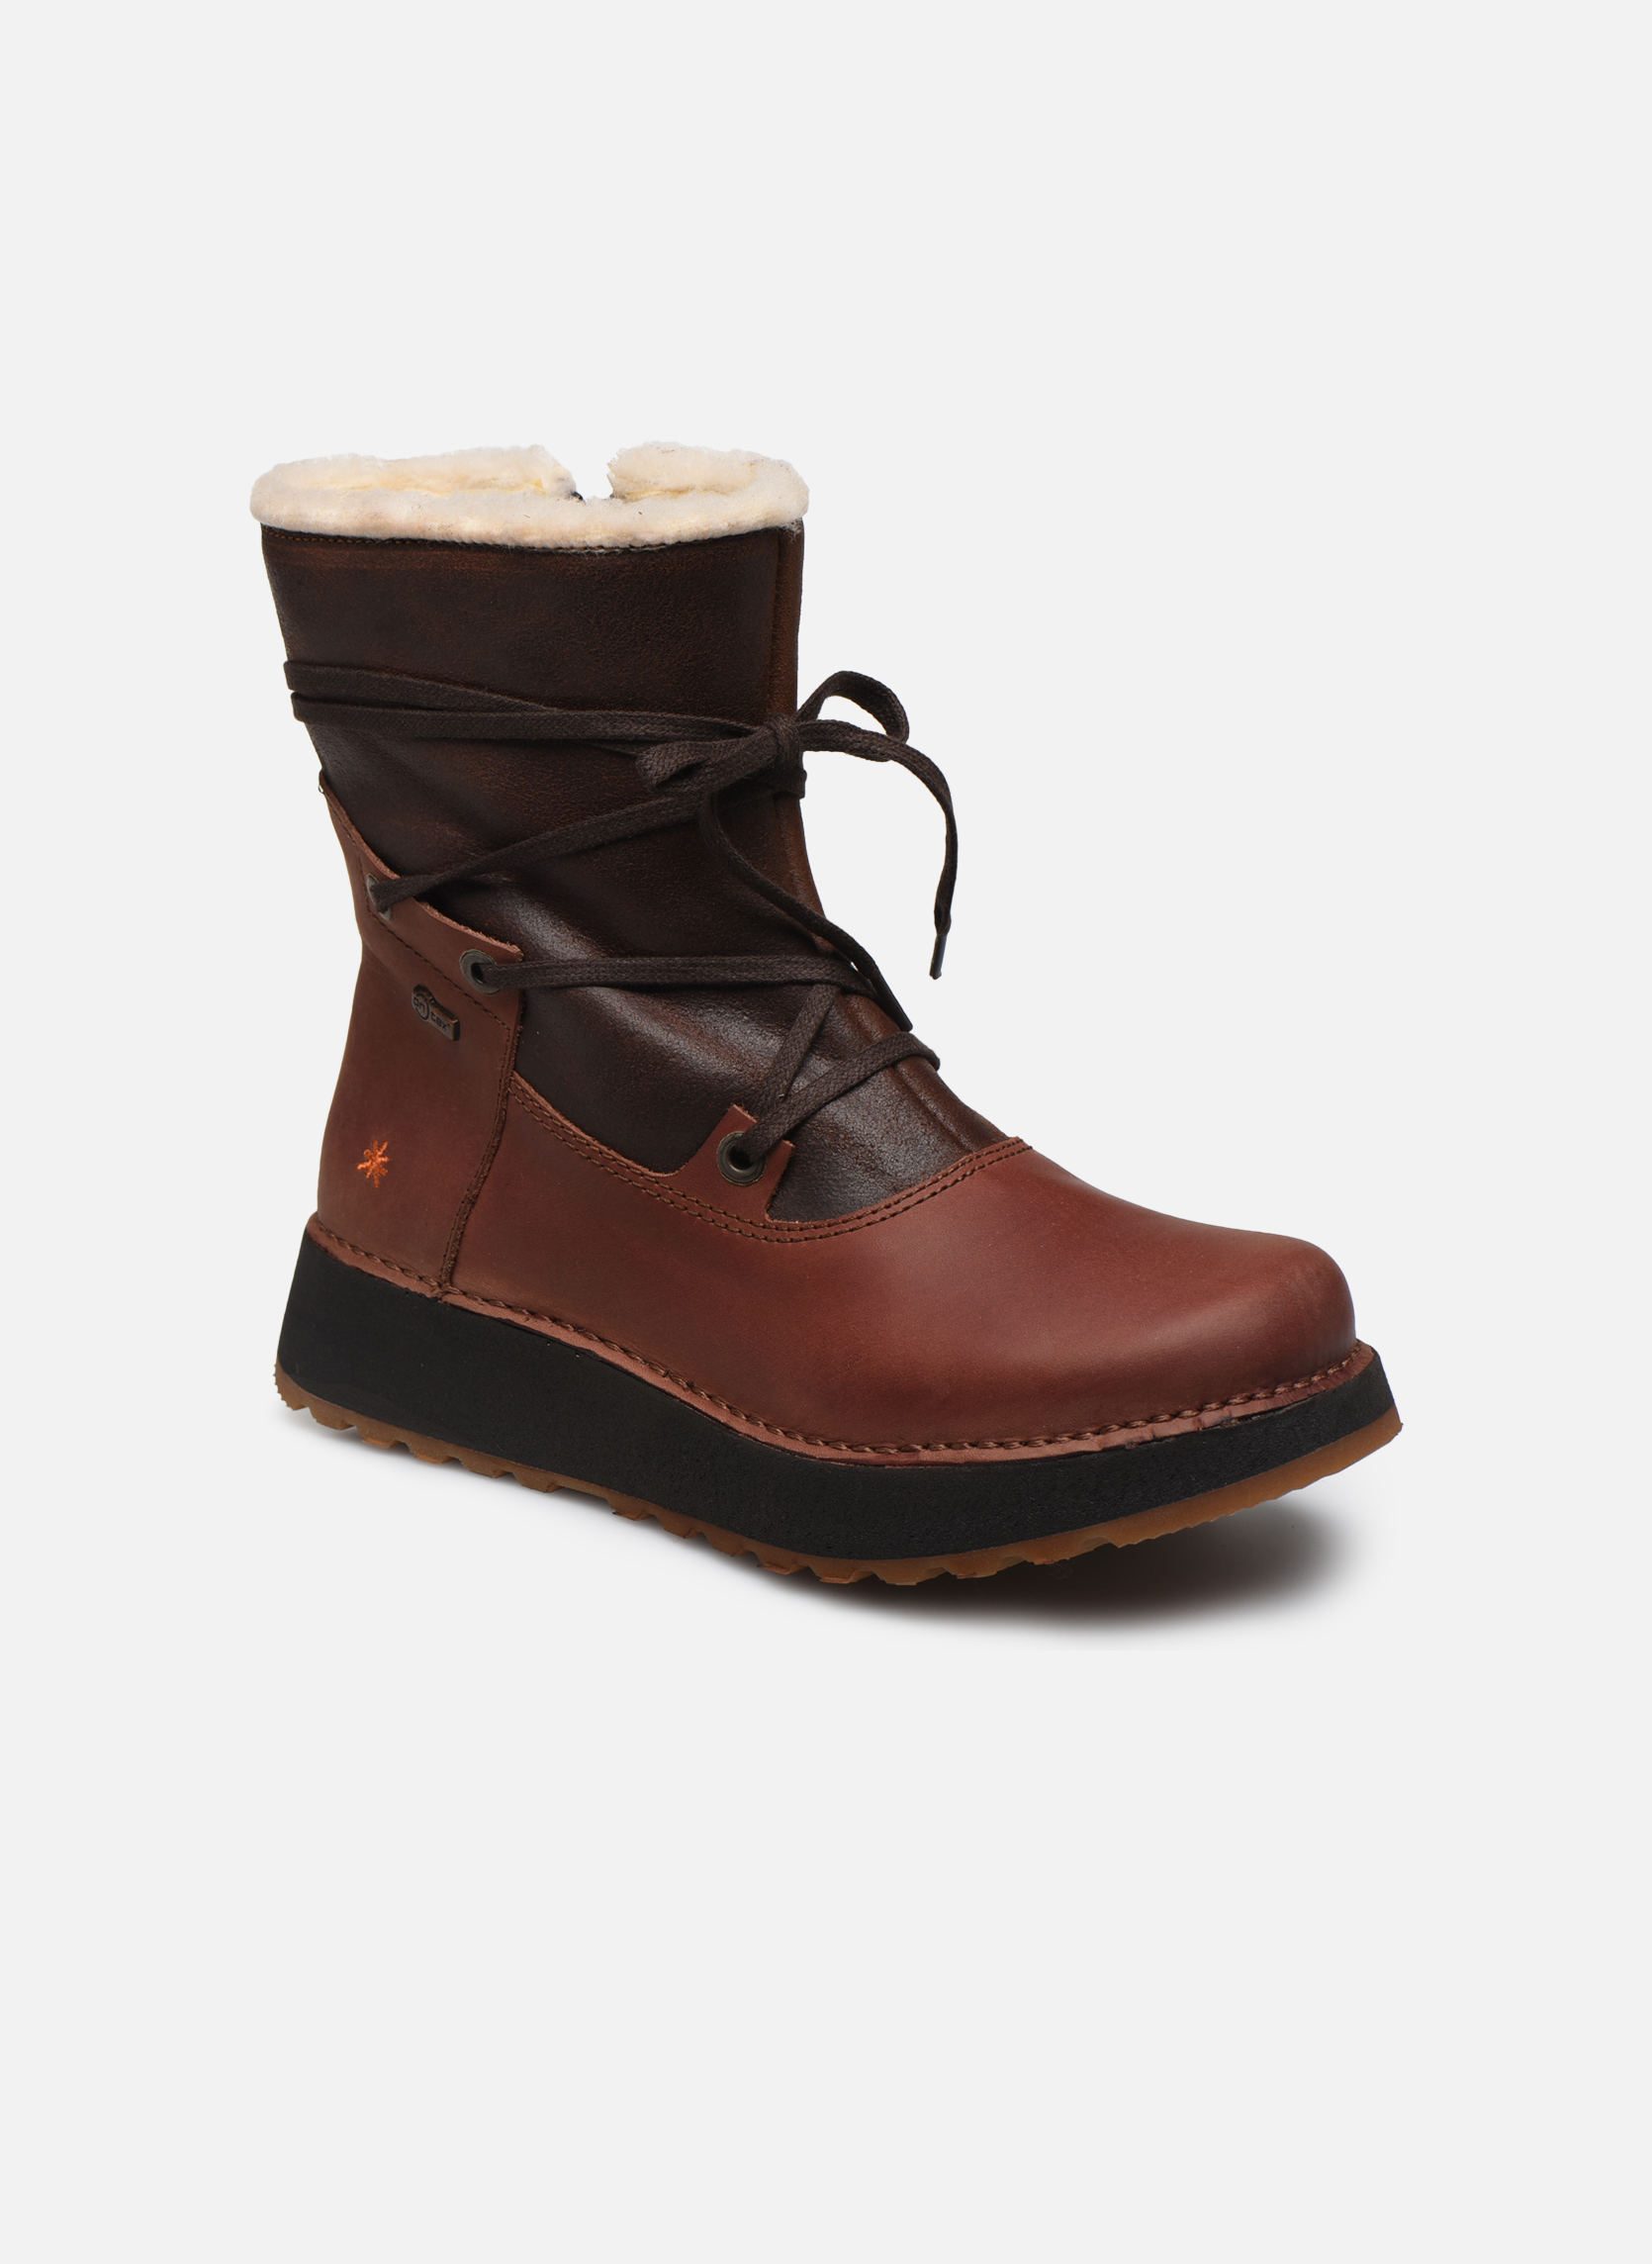 Bottines et boots Femme Heathrow 1024